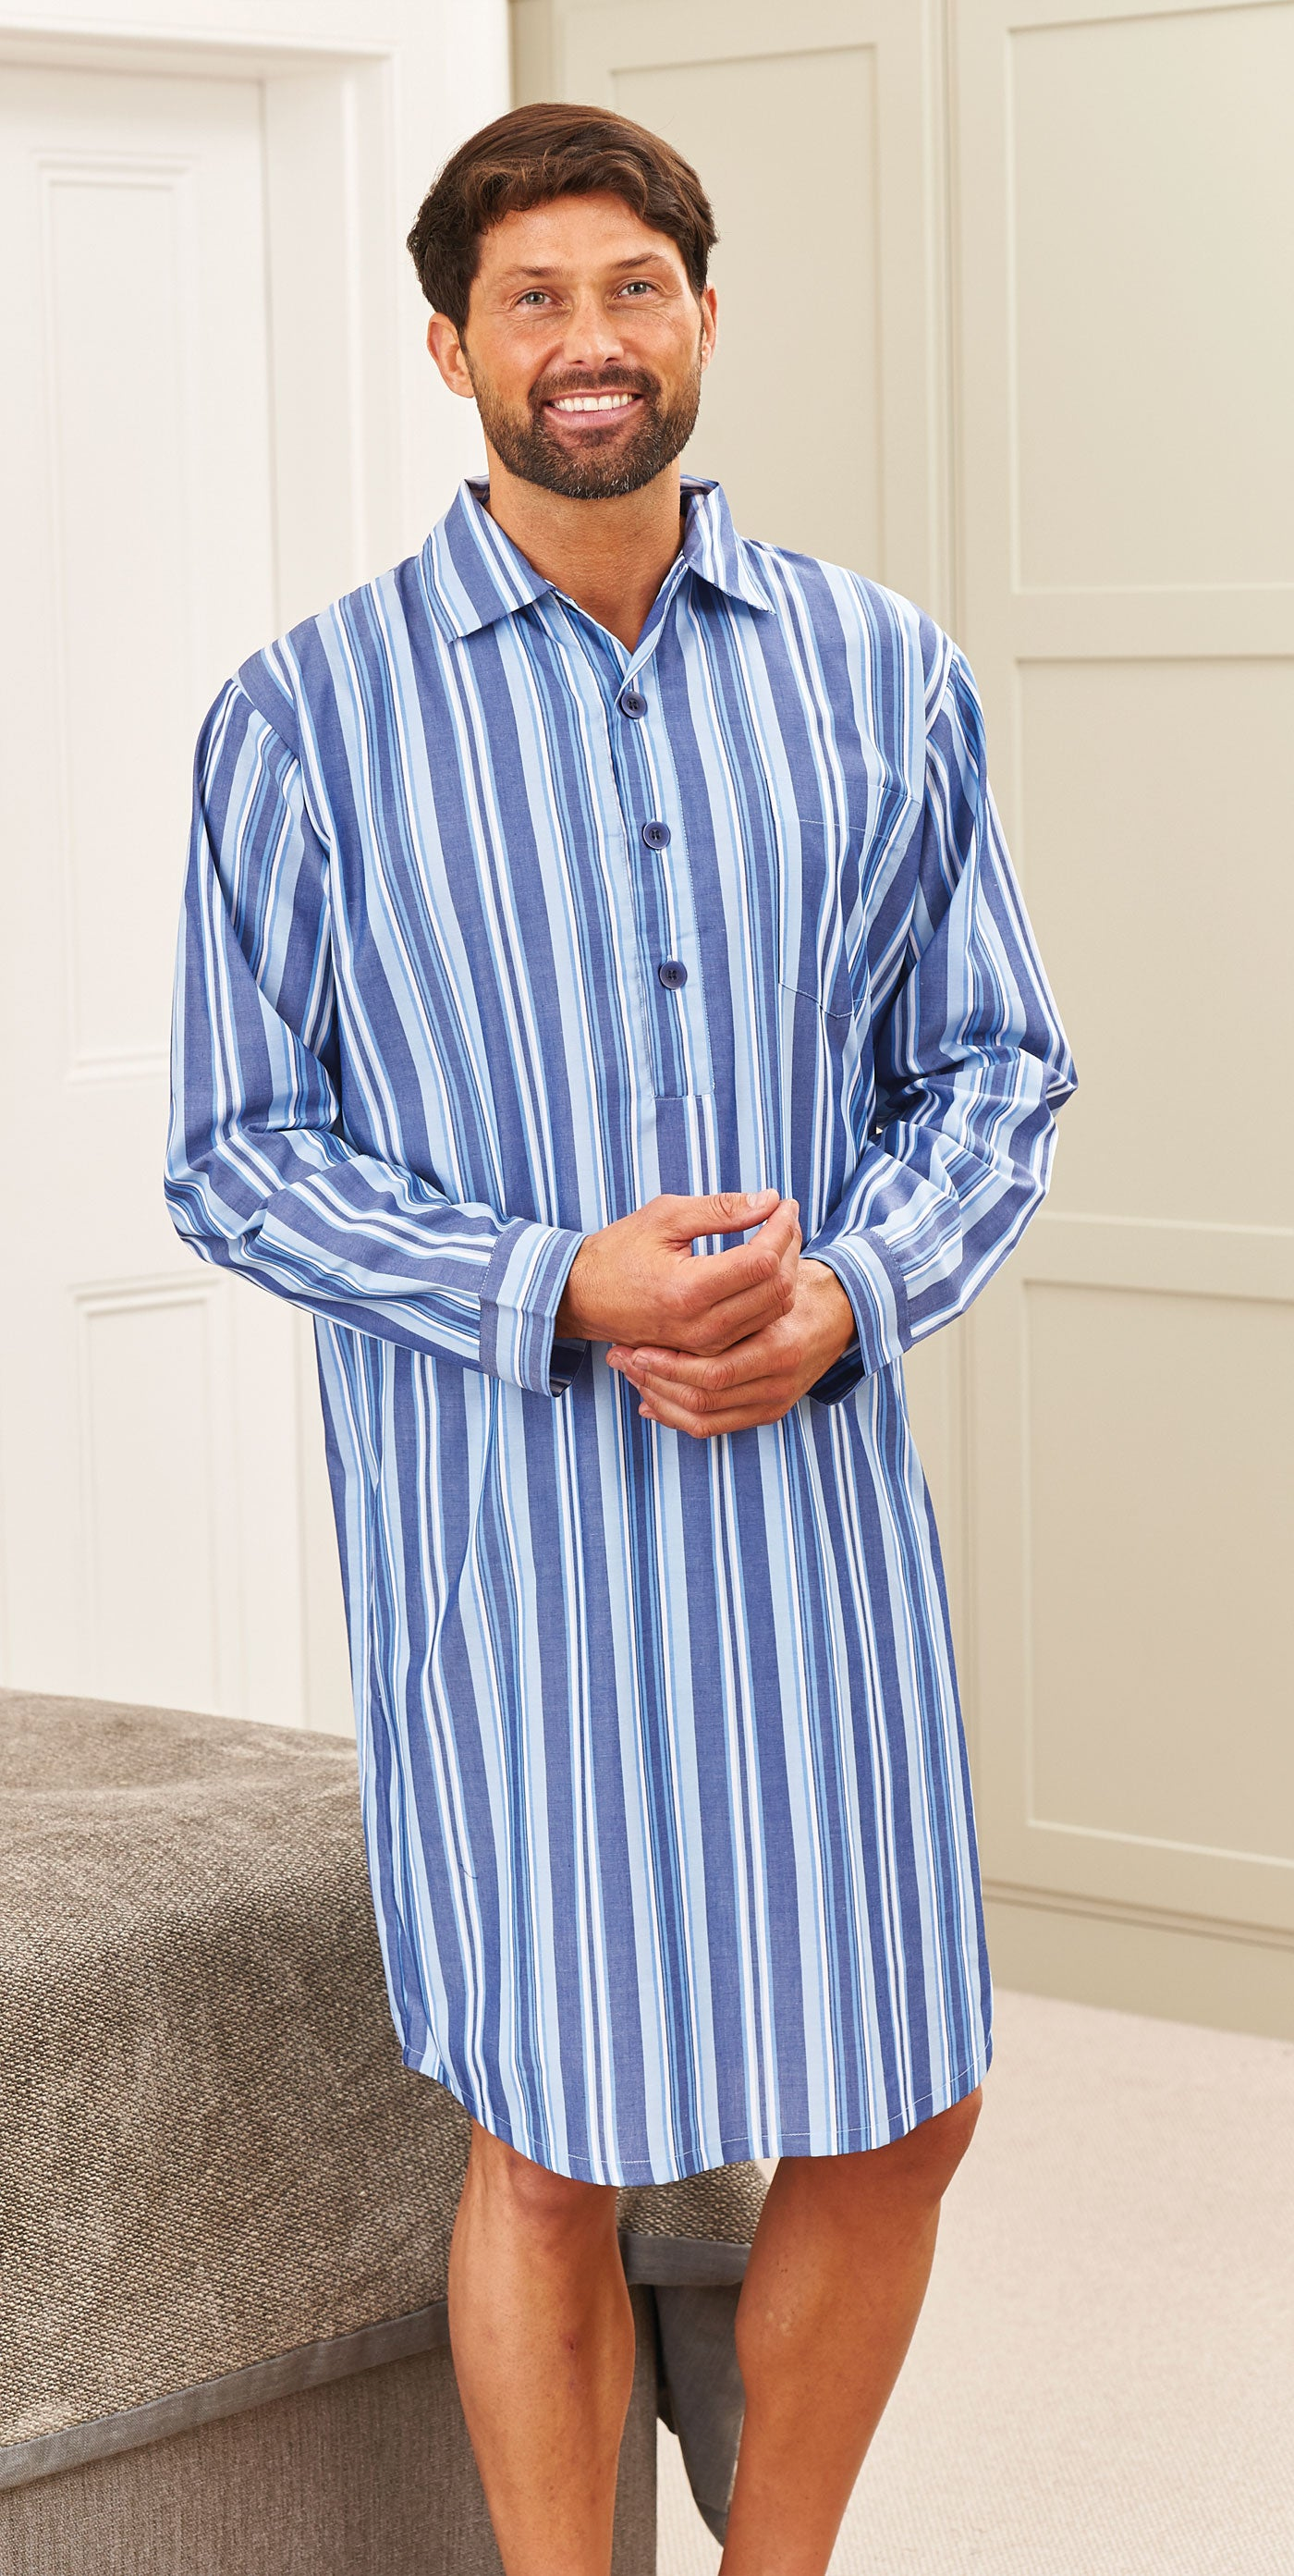 man with a beard in a nightshirt